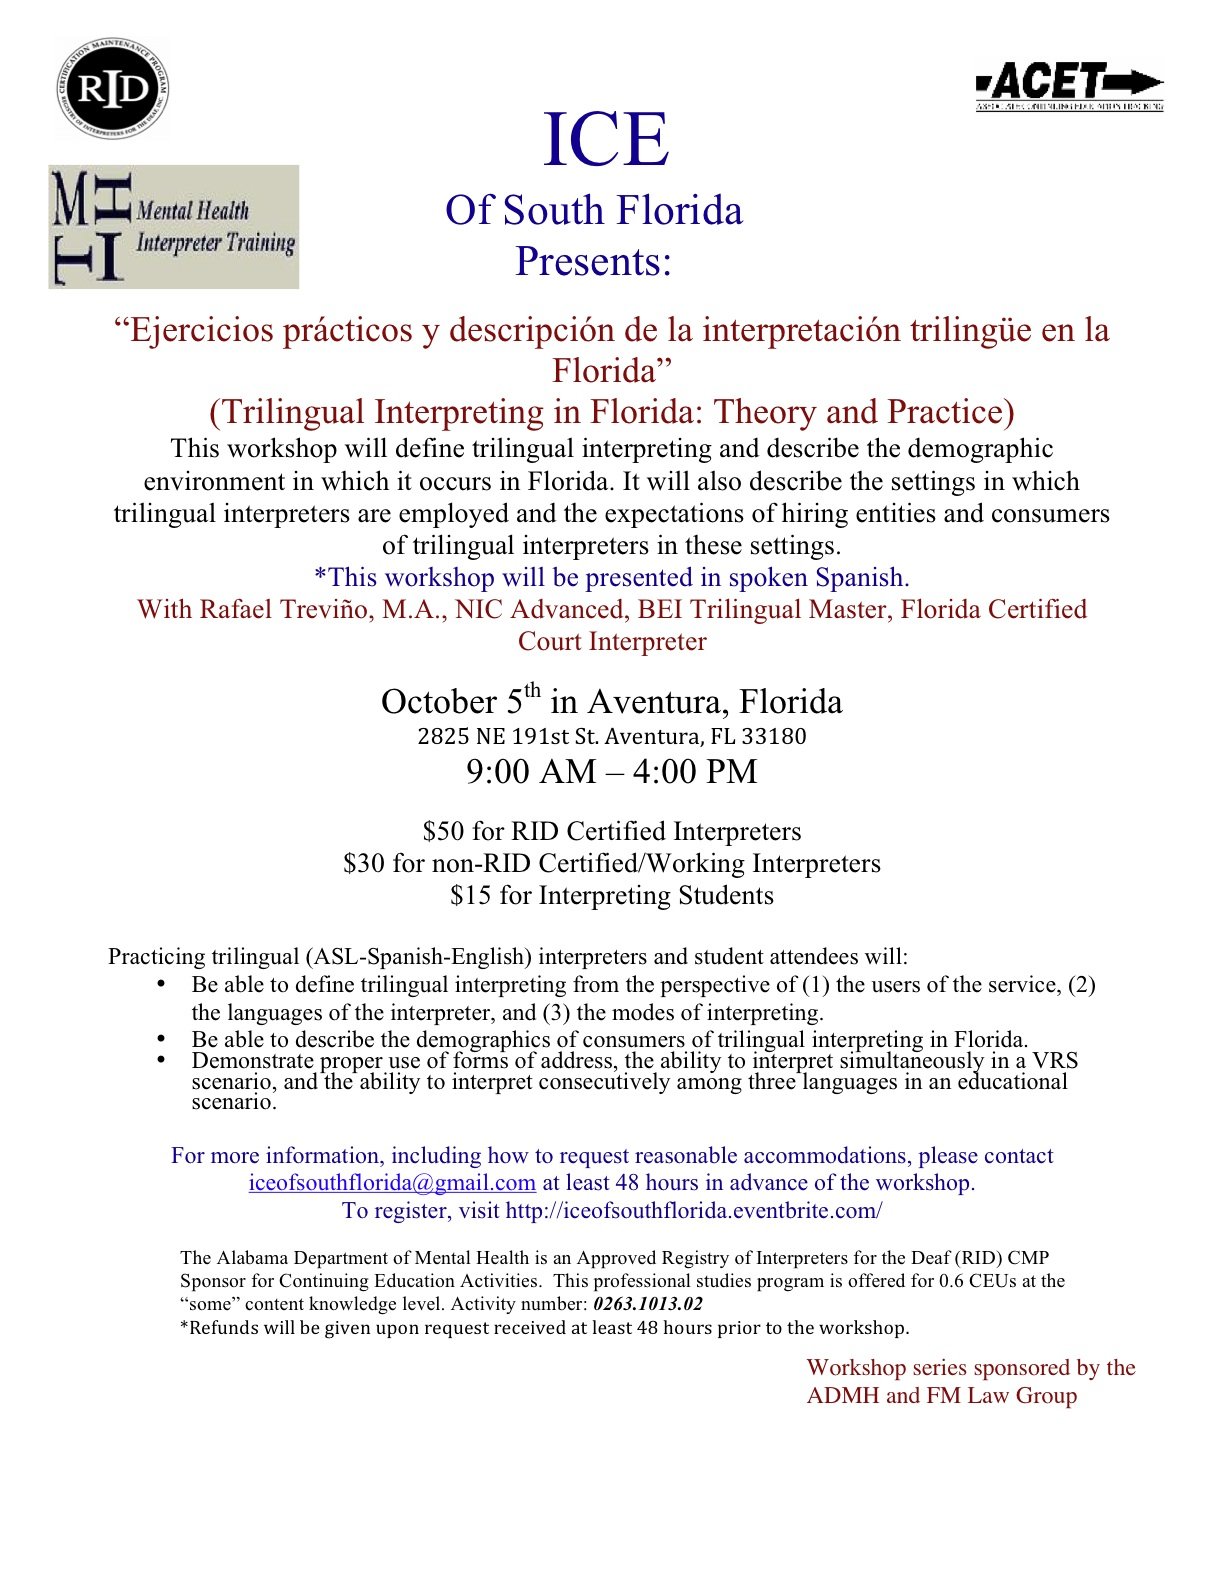 Trilingual workshop flyer